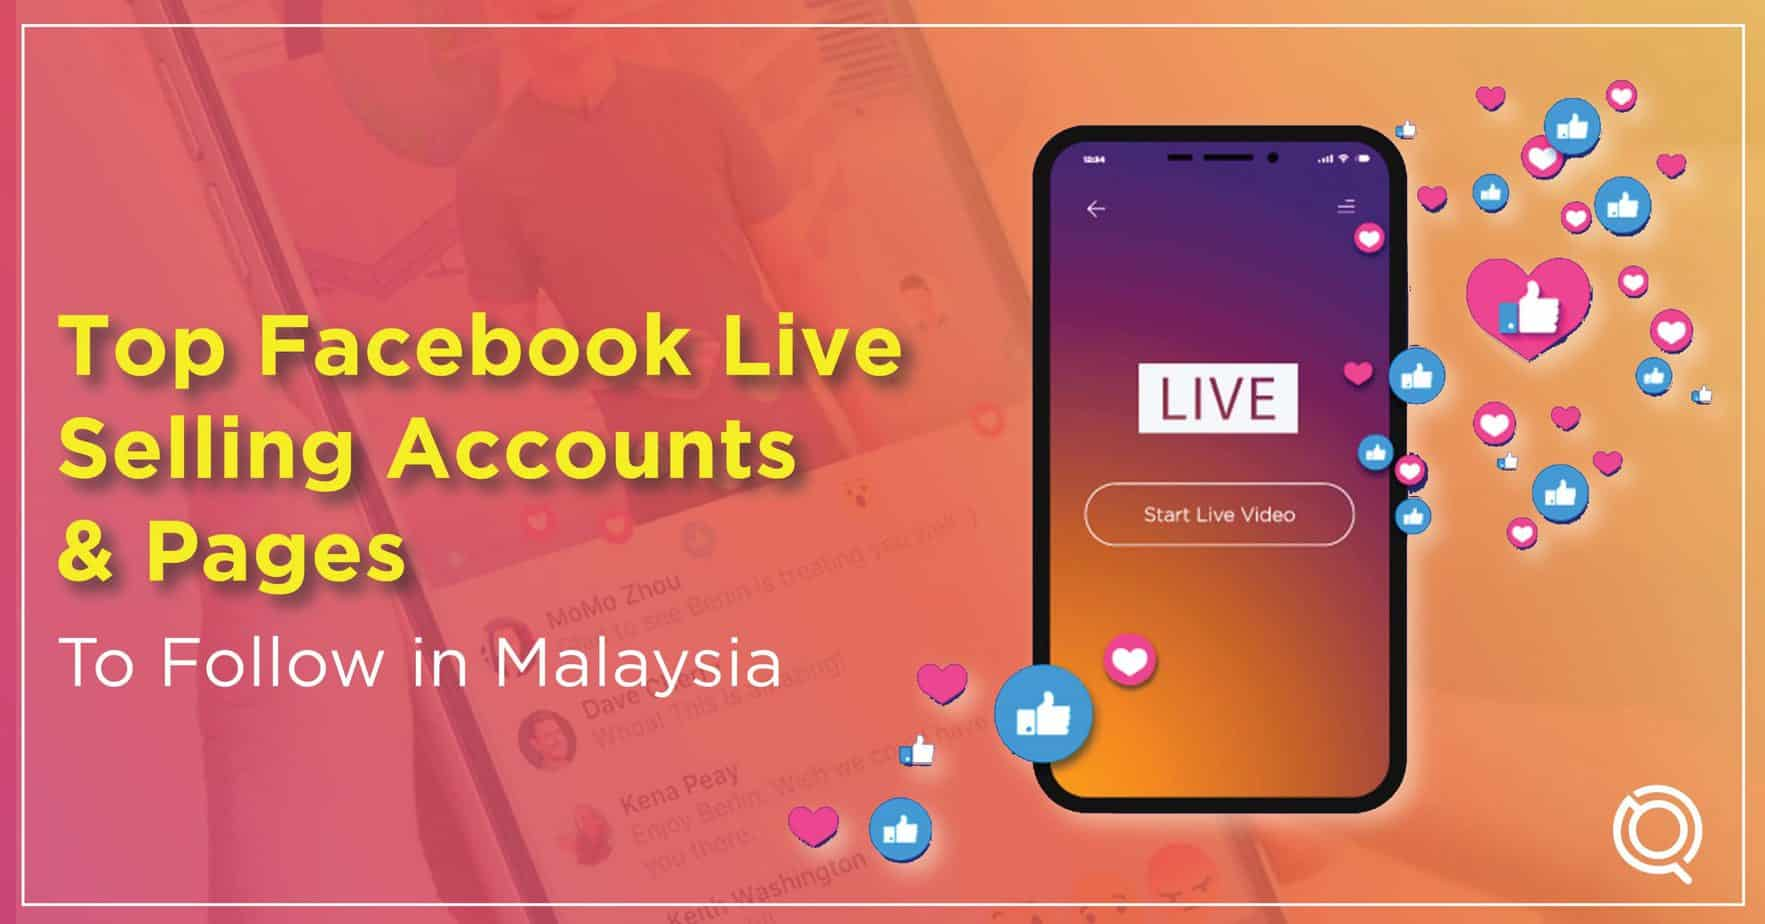 Malaysia Top Facebook Live Stream Commerce Selling Accounts and Pages 2021 - One Search Pro Digital Marketing Agency Malaysia